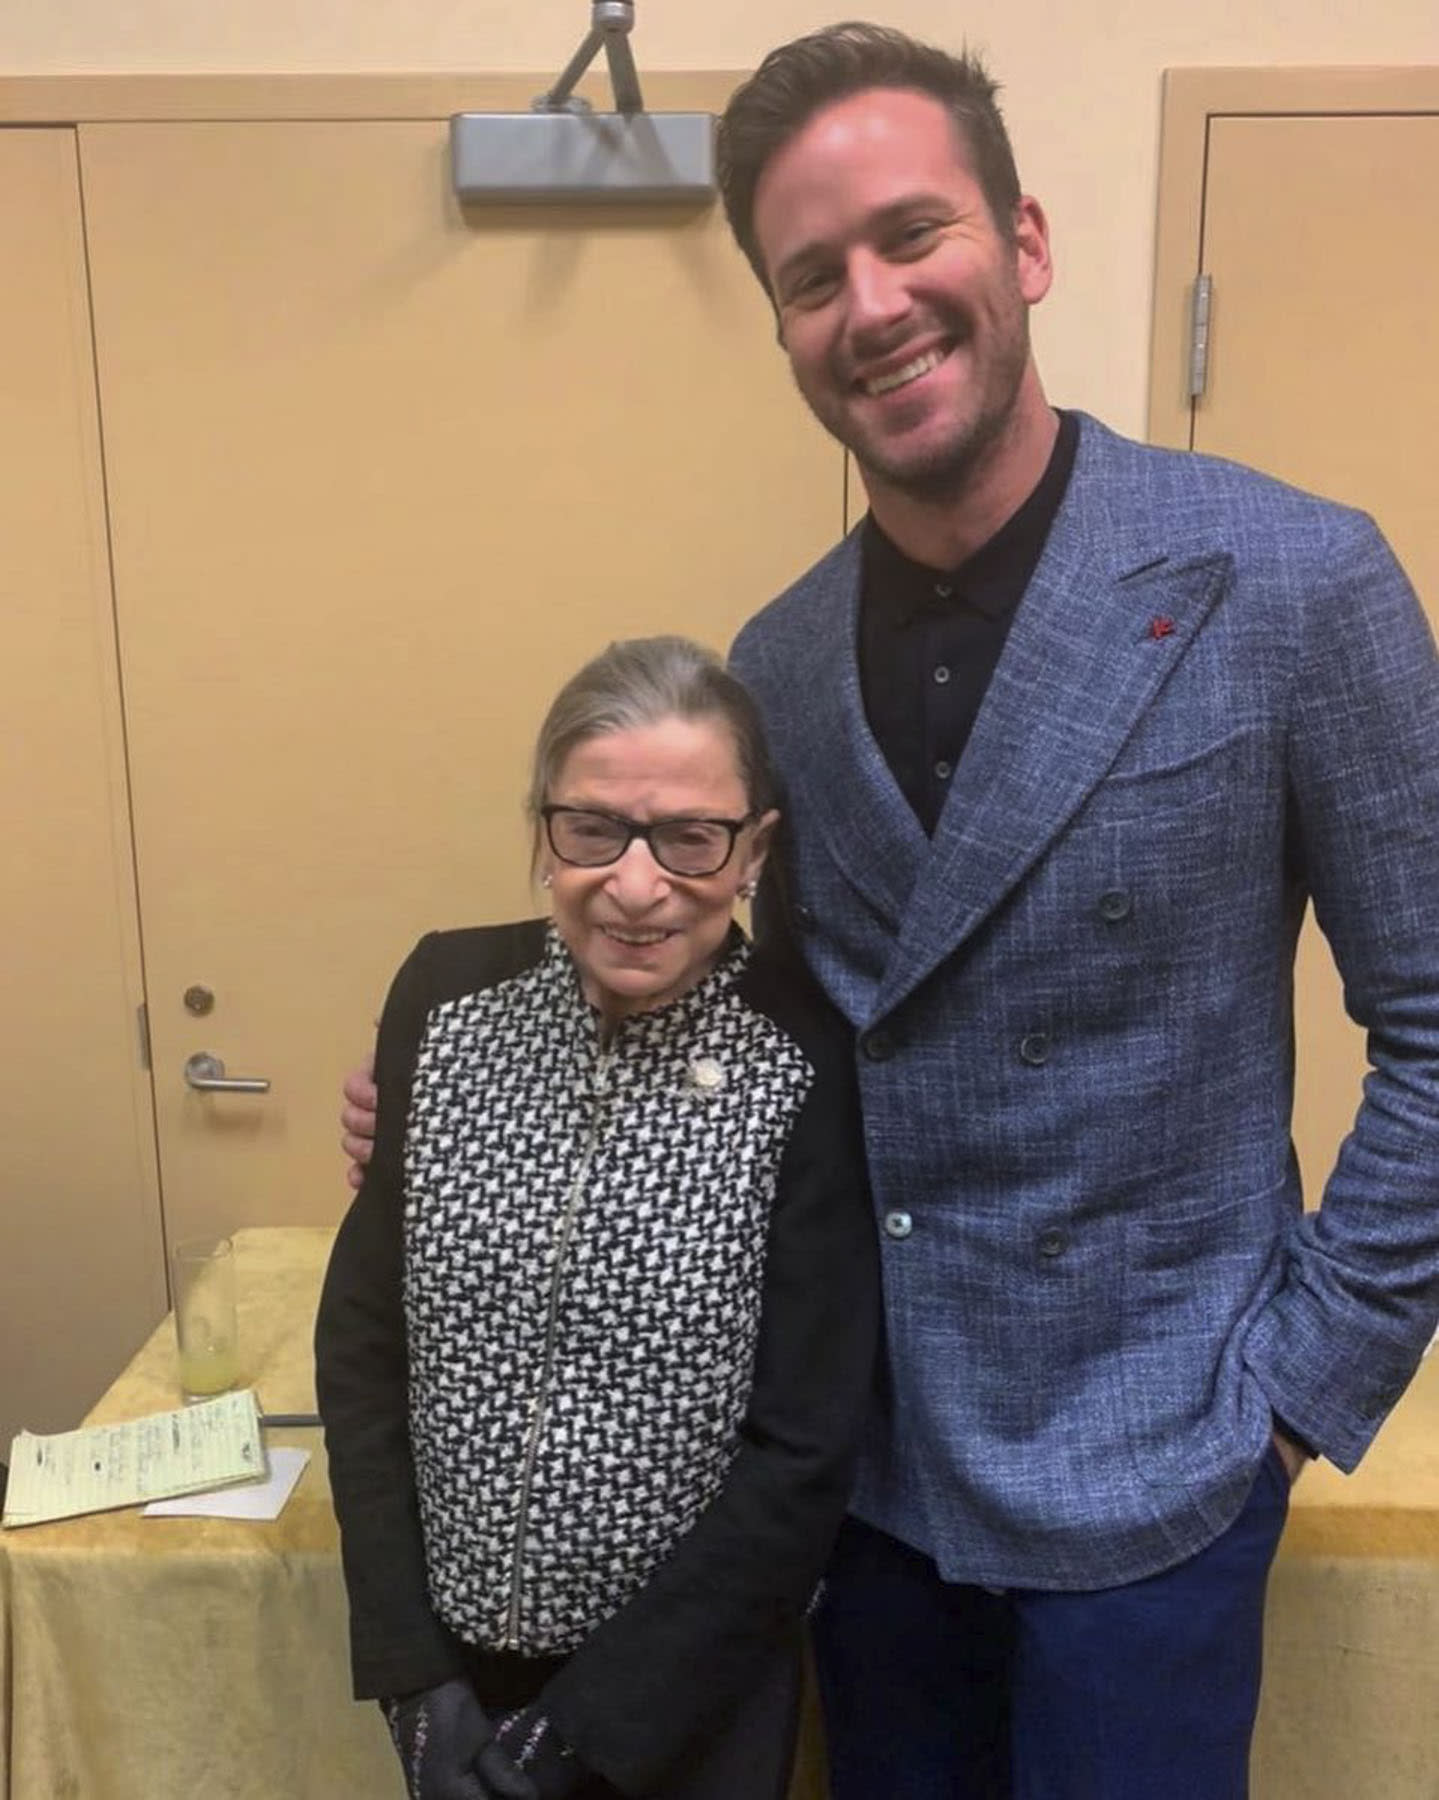 Justice Ginsburg Was Quite Taken With Armie Hammer Who Plays Her Late Husband In New Biopic